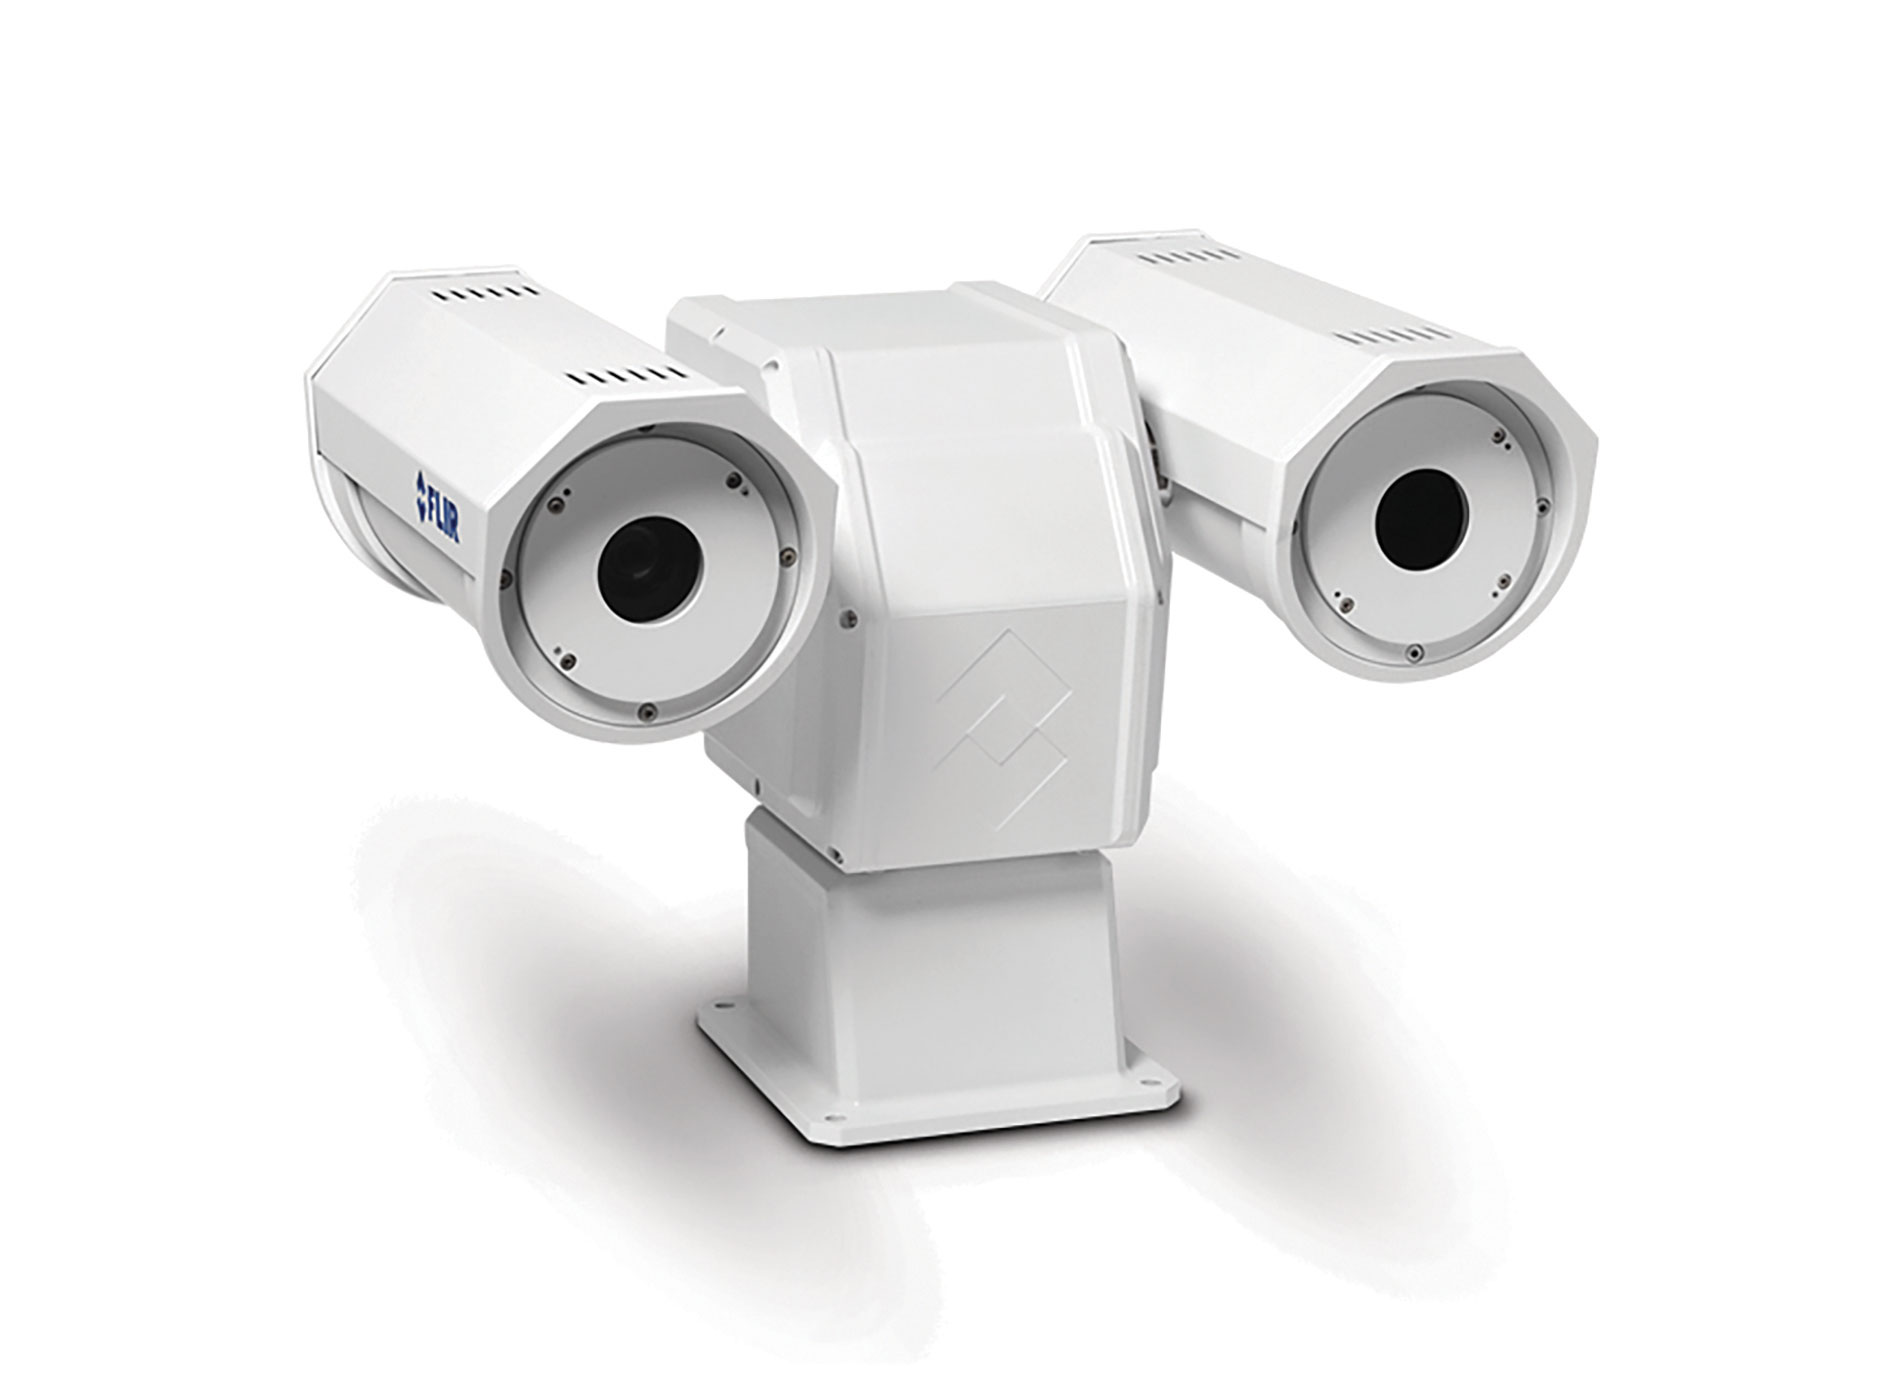 FLIR thermal security camera